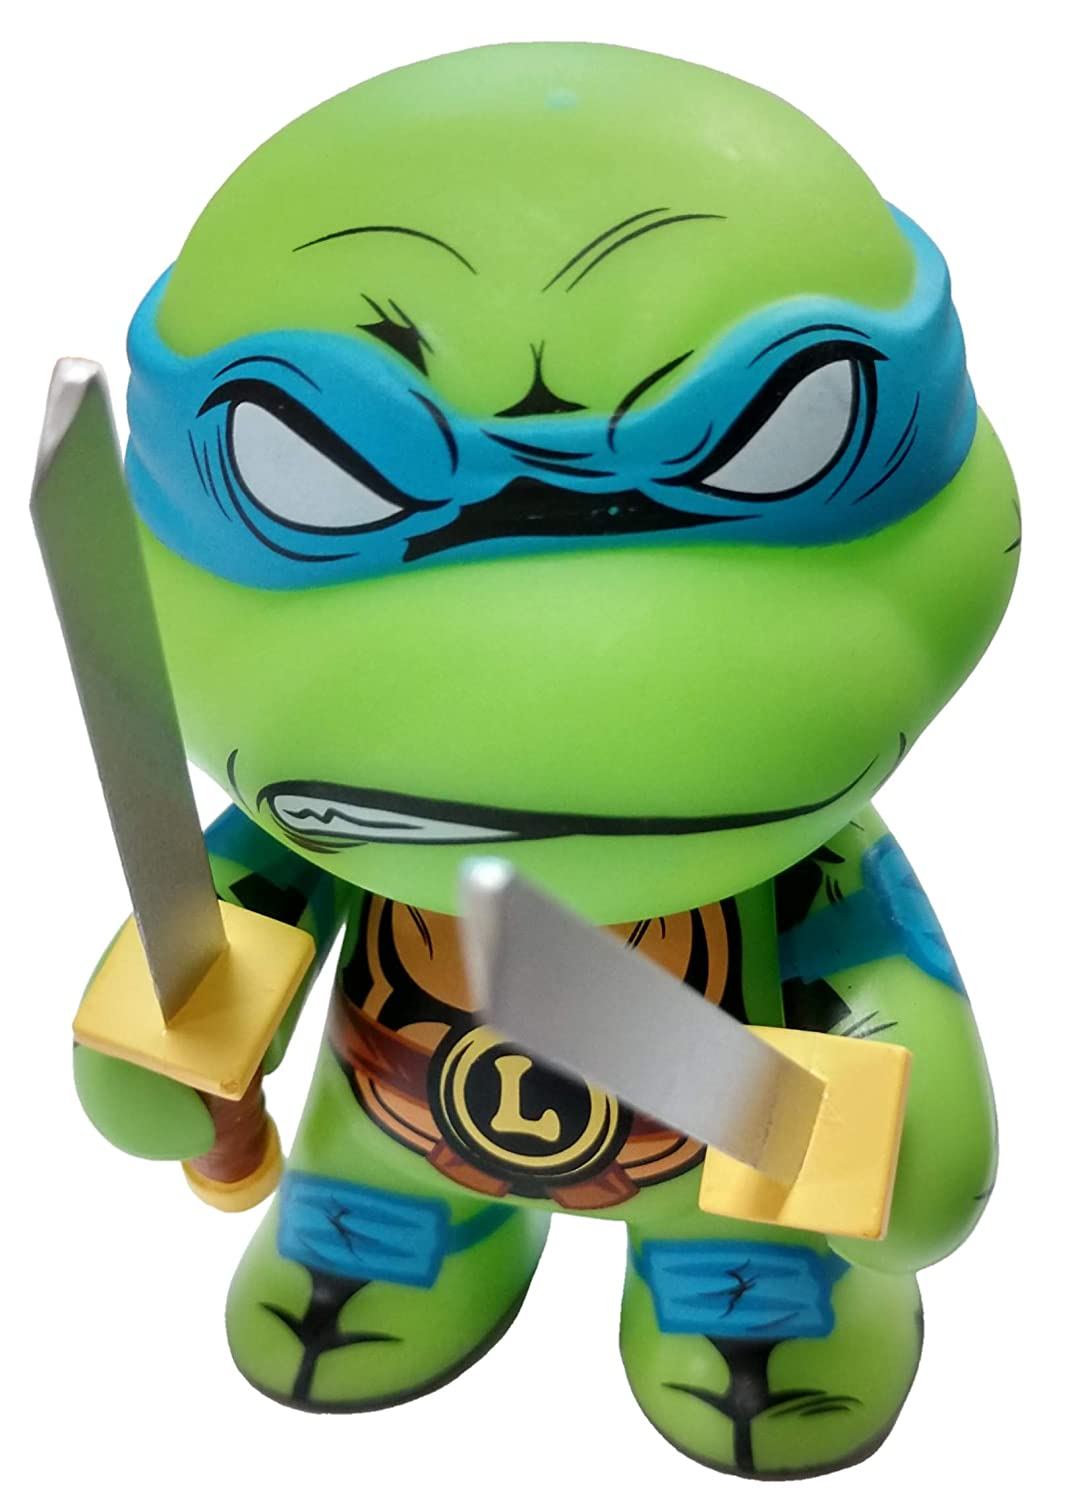 Amazon.com: Kidrobot Teenage Mutant Ninja Turtles serie 2 ...